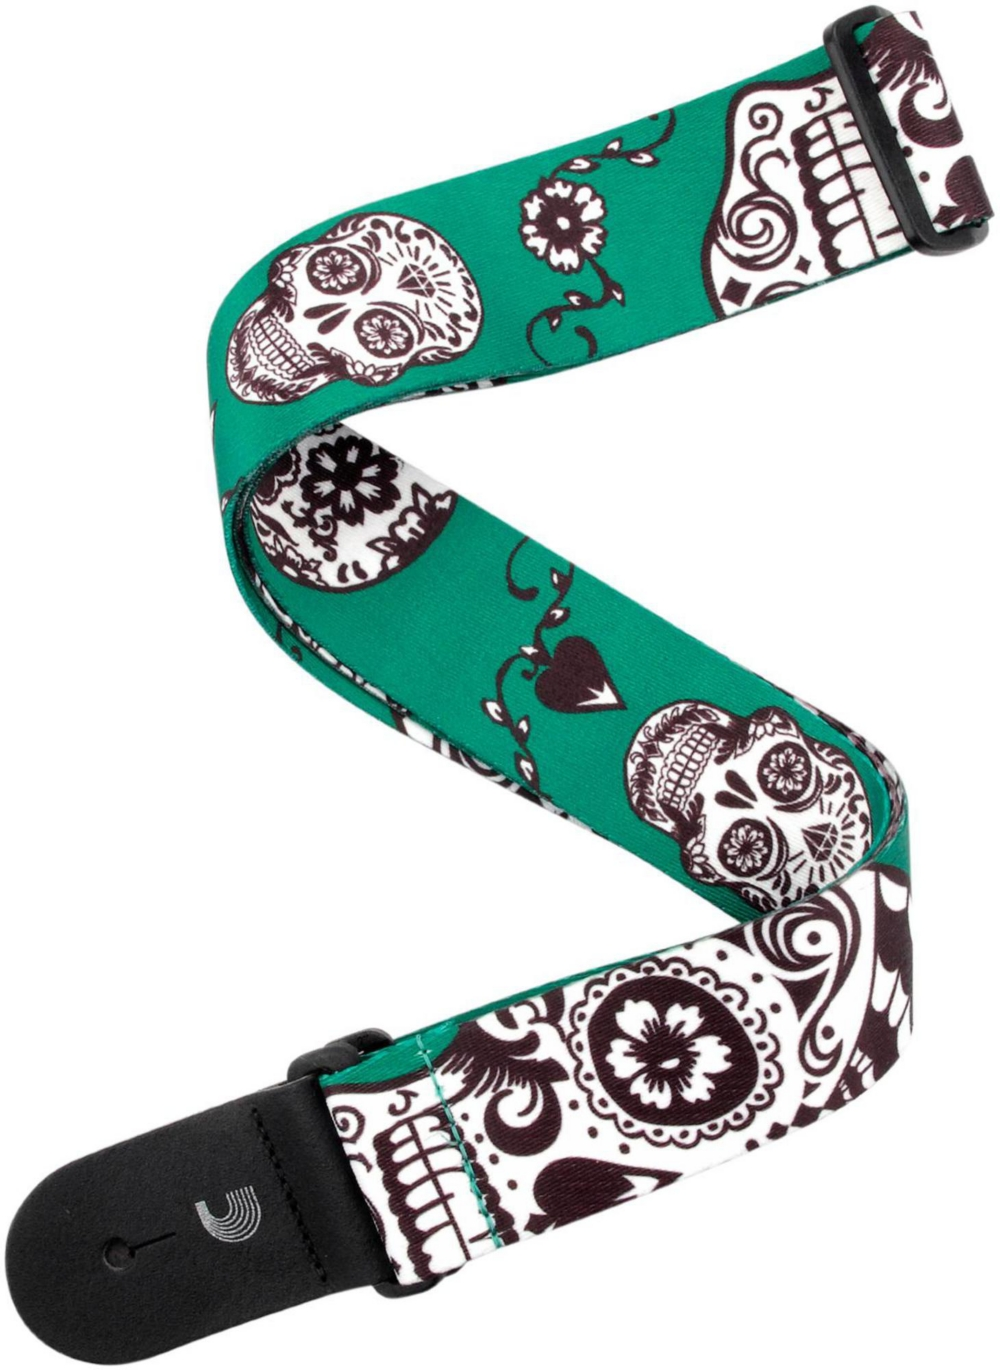 """D'Addario Planet Waves 2"""" Polyester Guitar Strap, Sugar Skulls, by D'Addario Green by D'Addario Planet Waves"""